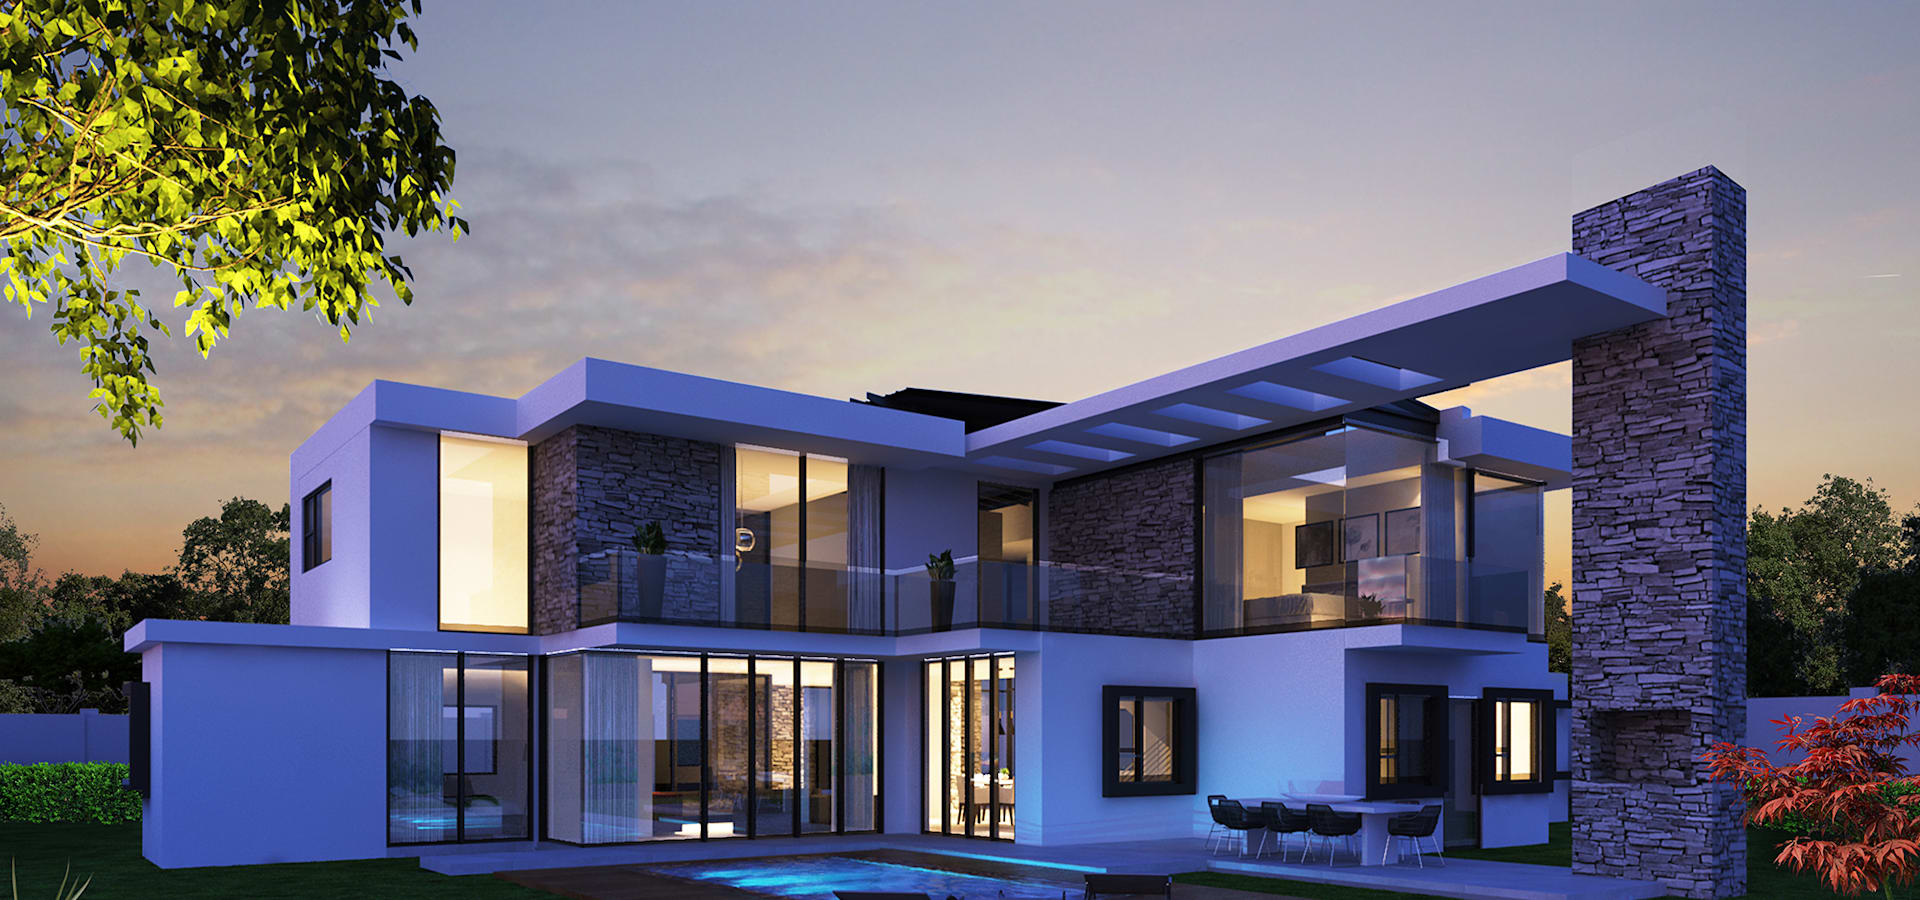 TTS ARCHITECTURAL PROJECTS